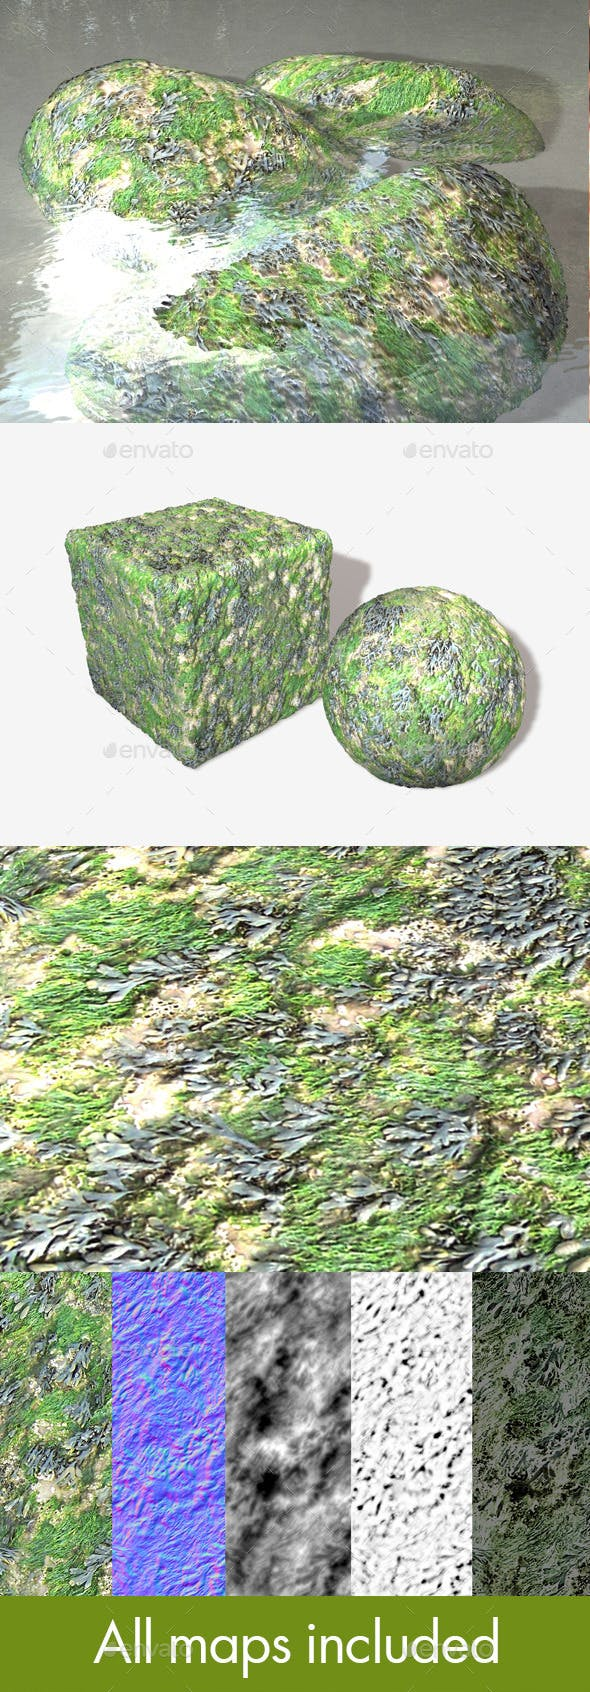 Seaweed and Moss Seamless Texture - 3DOcean Item for Sale